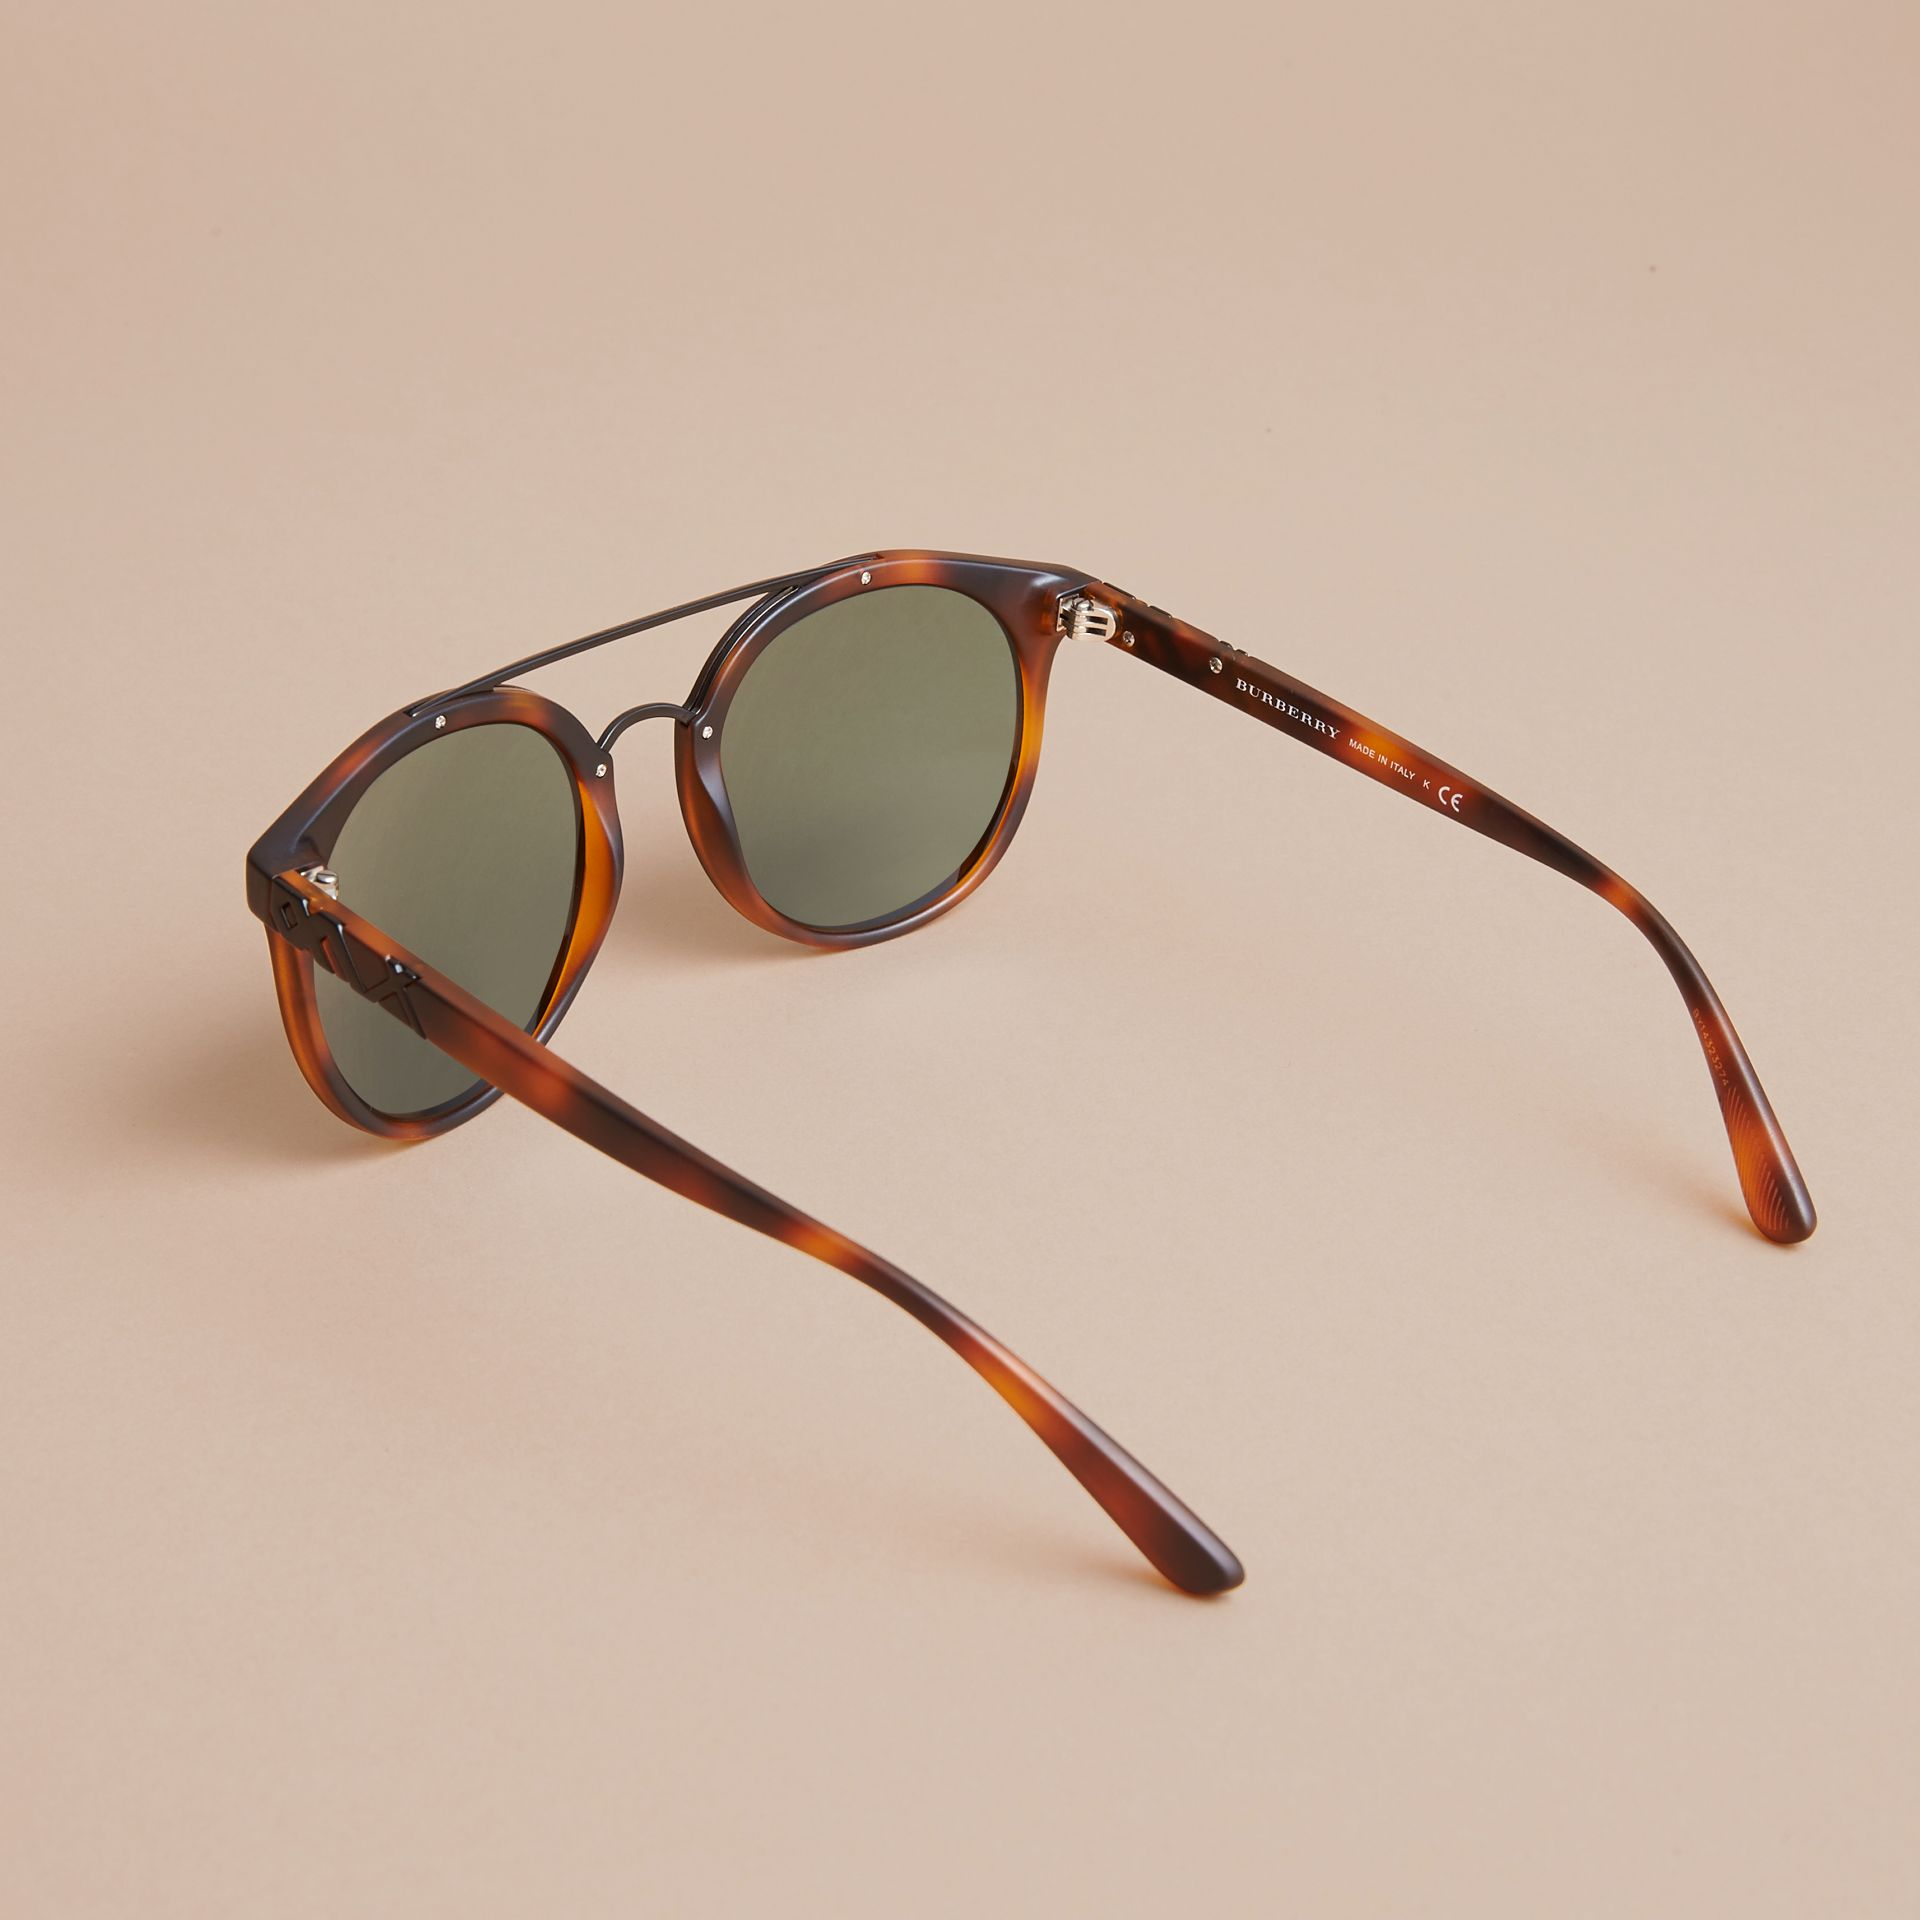 Top Bar Round Frame Sunglasses in Brown - Men | Burberry - gallery image 4